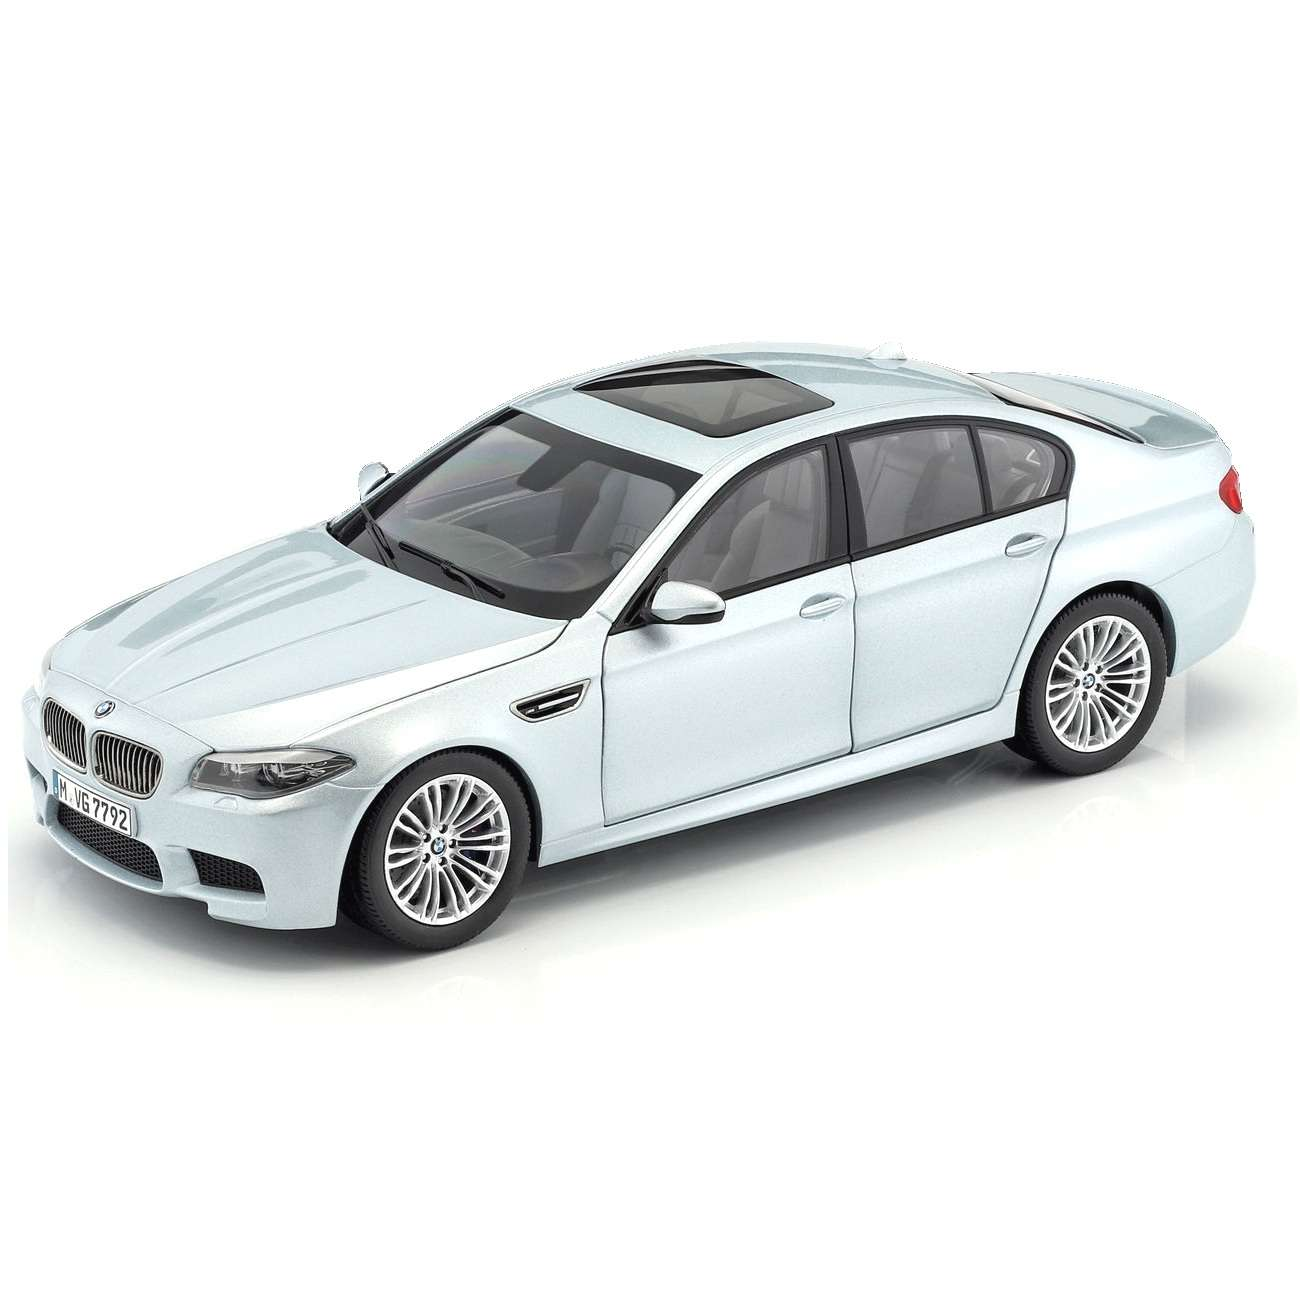 Diecast Car 1/18: Street Cars - BMW M5 V8 BiTurbo F10 Silverstone II, 2011 Photo